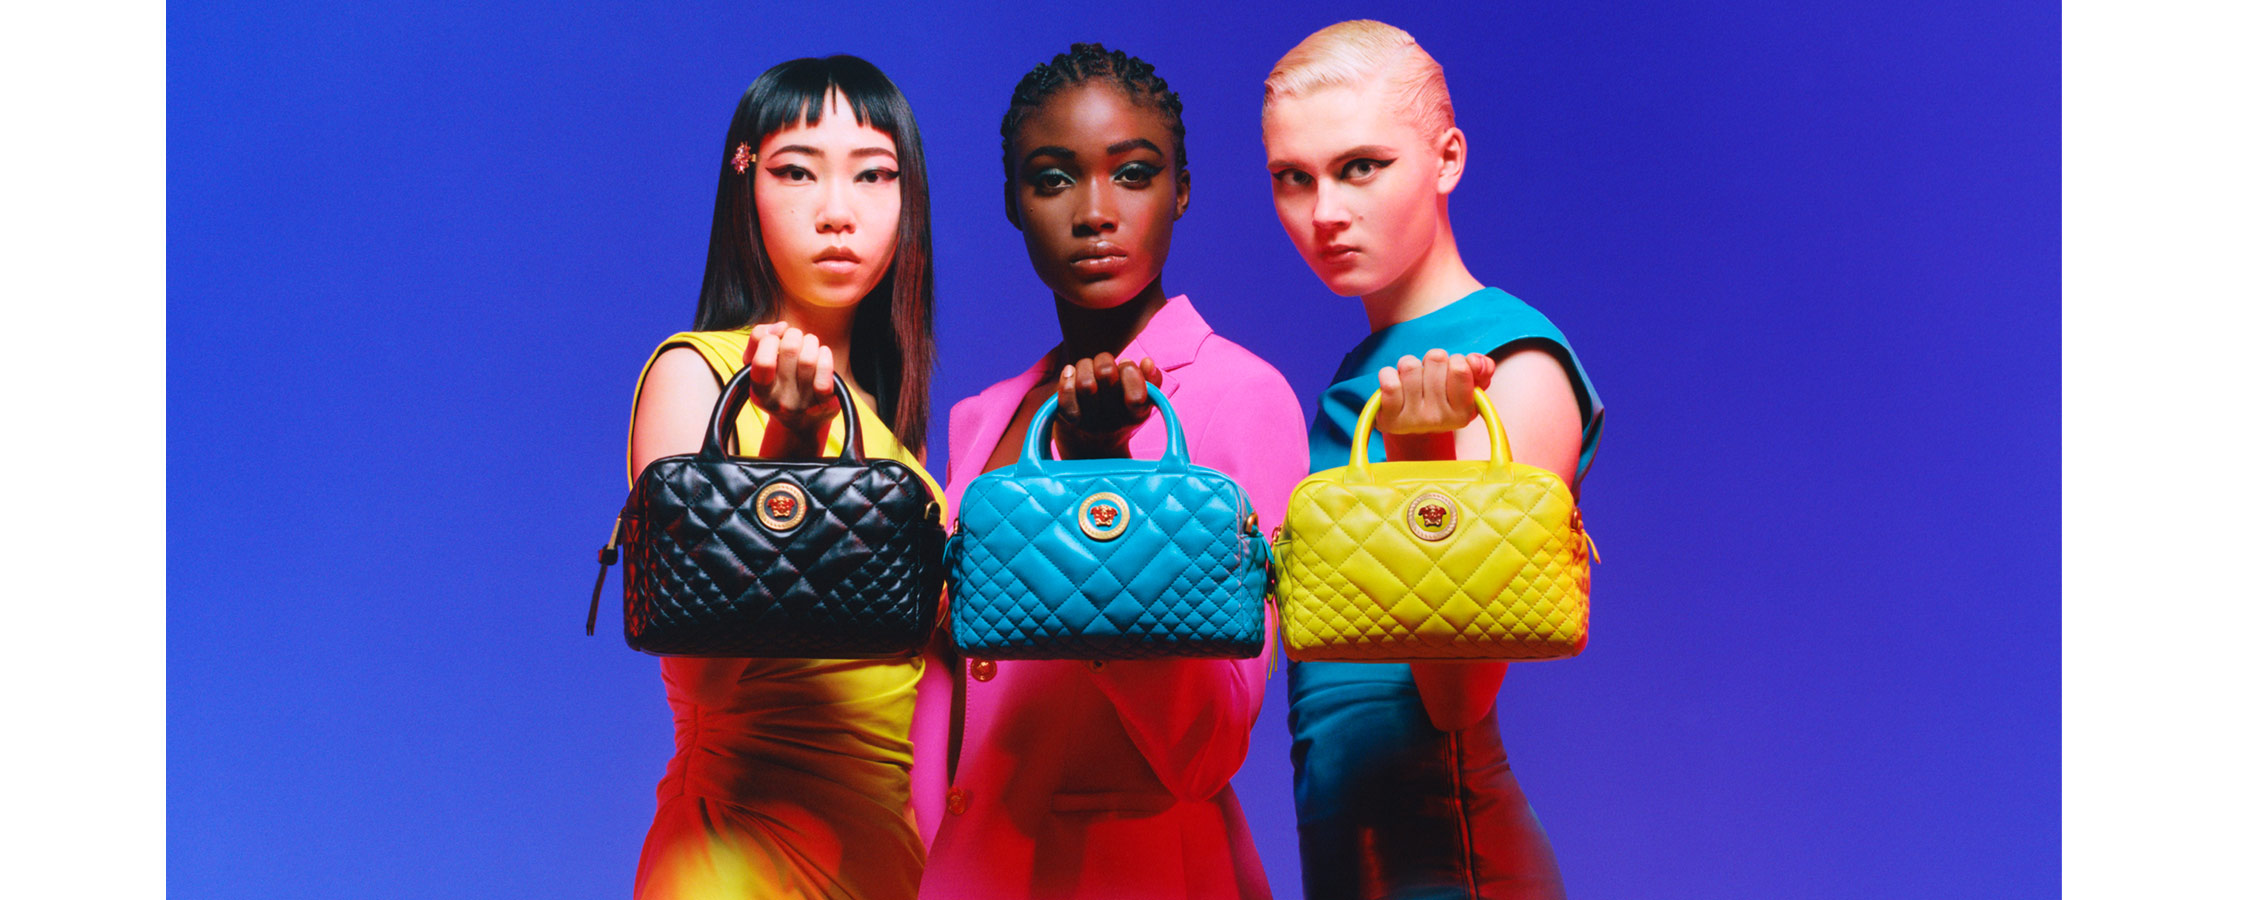 Item Shop München Versace Official Online Store Fashion Clothing Accessories